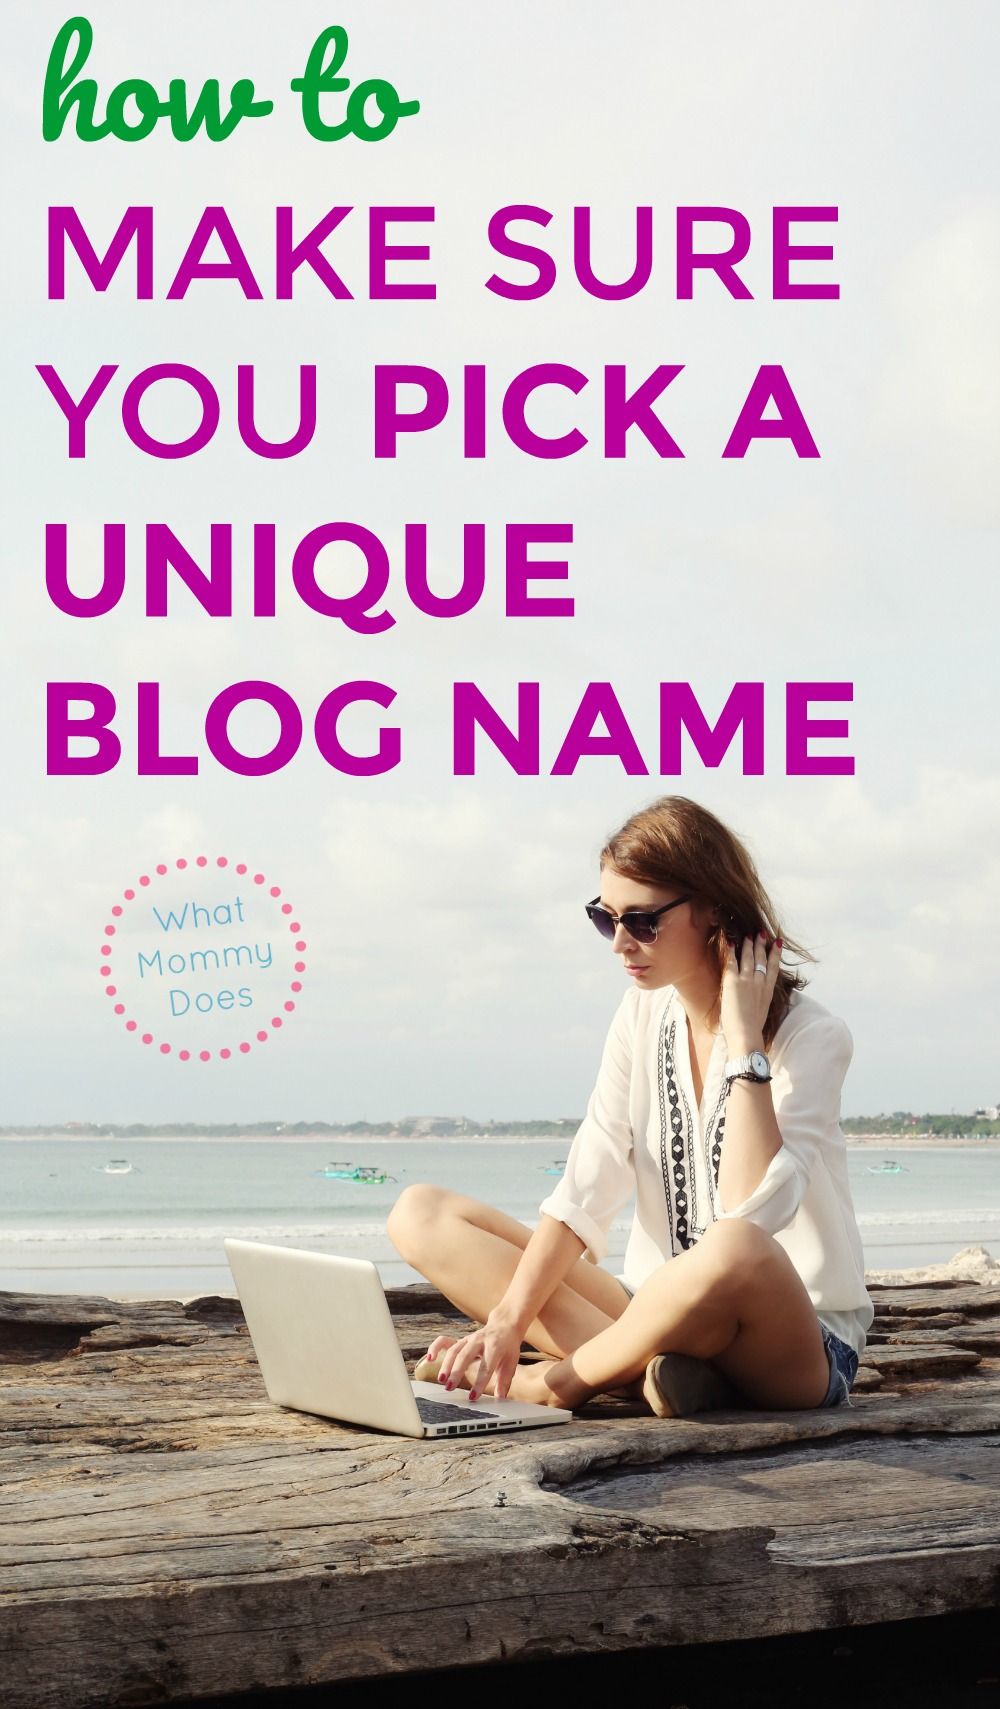 If you have wondered how to find the perfect blog name, this girl will teach you how to choose an attention grabbing blog name you'll love! There's a science to naming your blog the right way. | choose the perfect blog name, blogging ideas, extra cash ideas for moms, money making blog ideas, how to start a blog step-by-step title tutorial